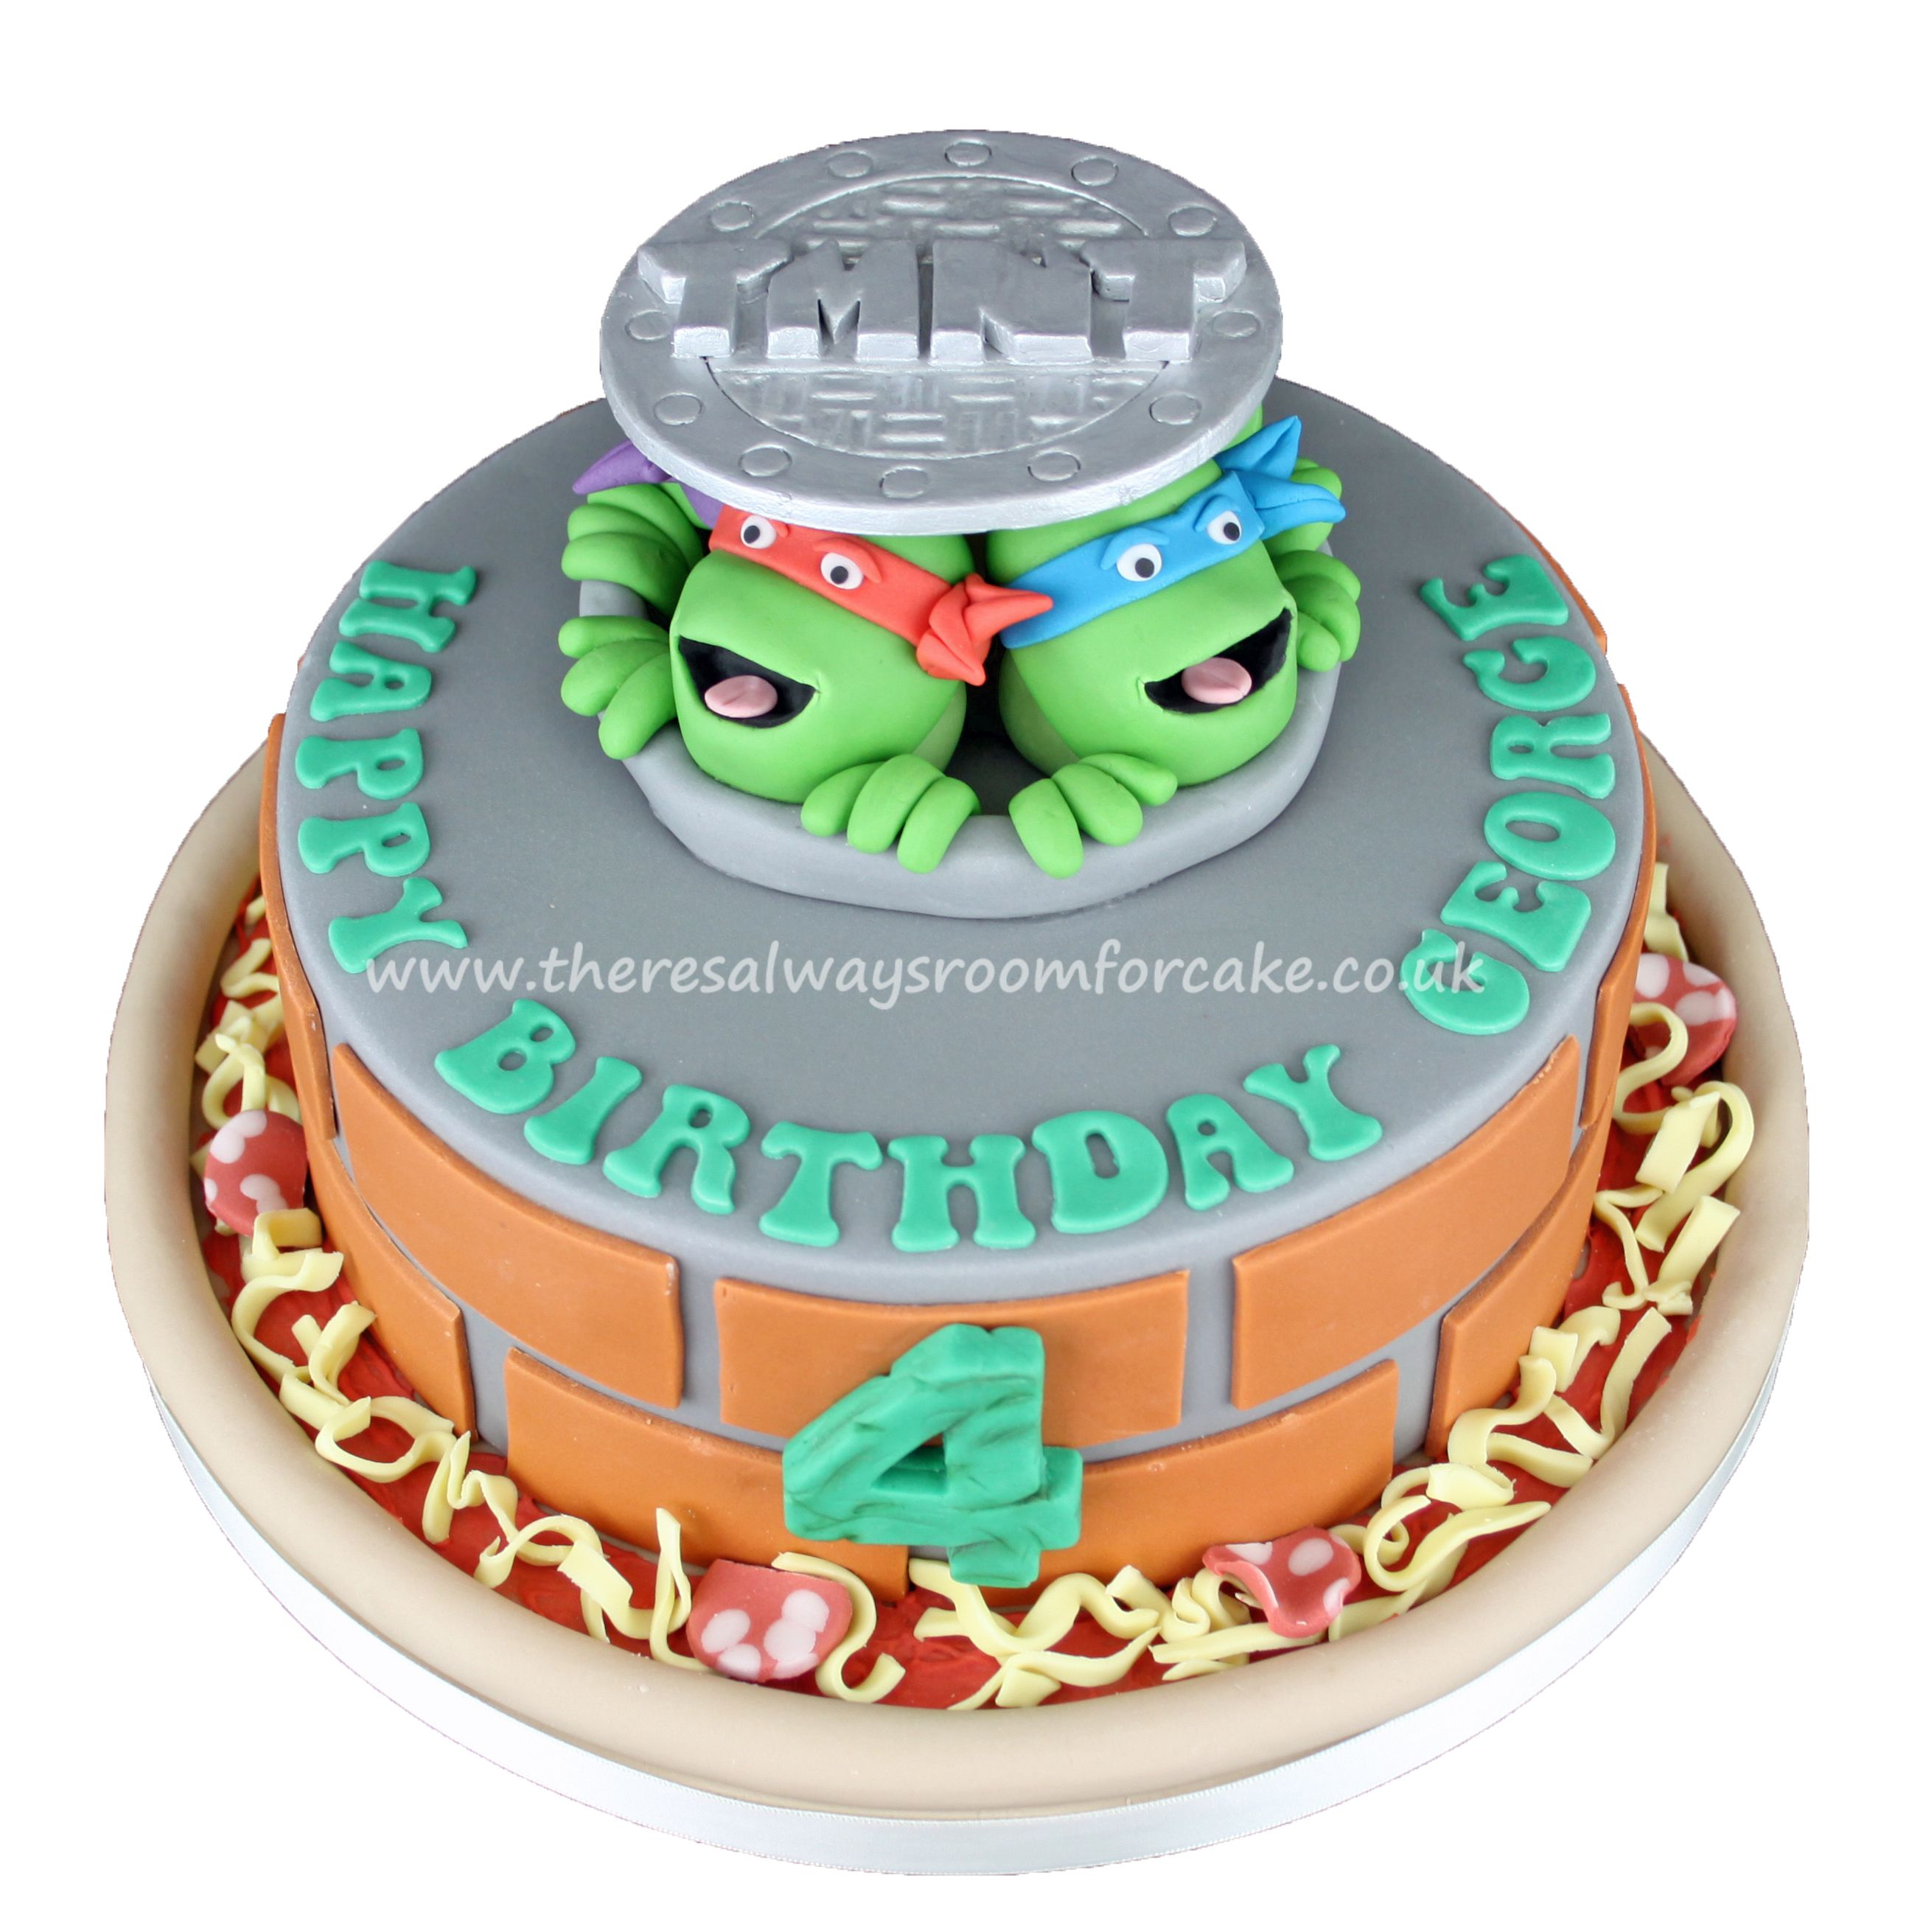 Teenage Mutant Ninja Turtles Cake Make bake and decorate